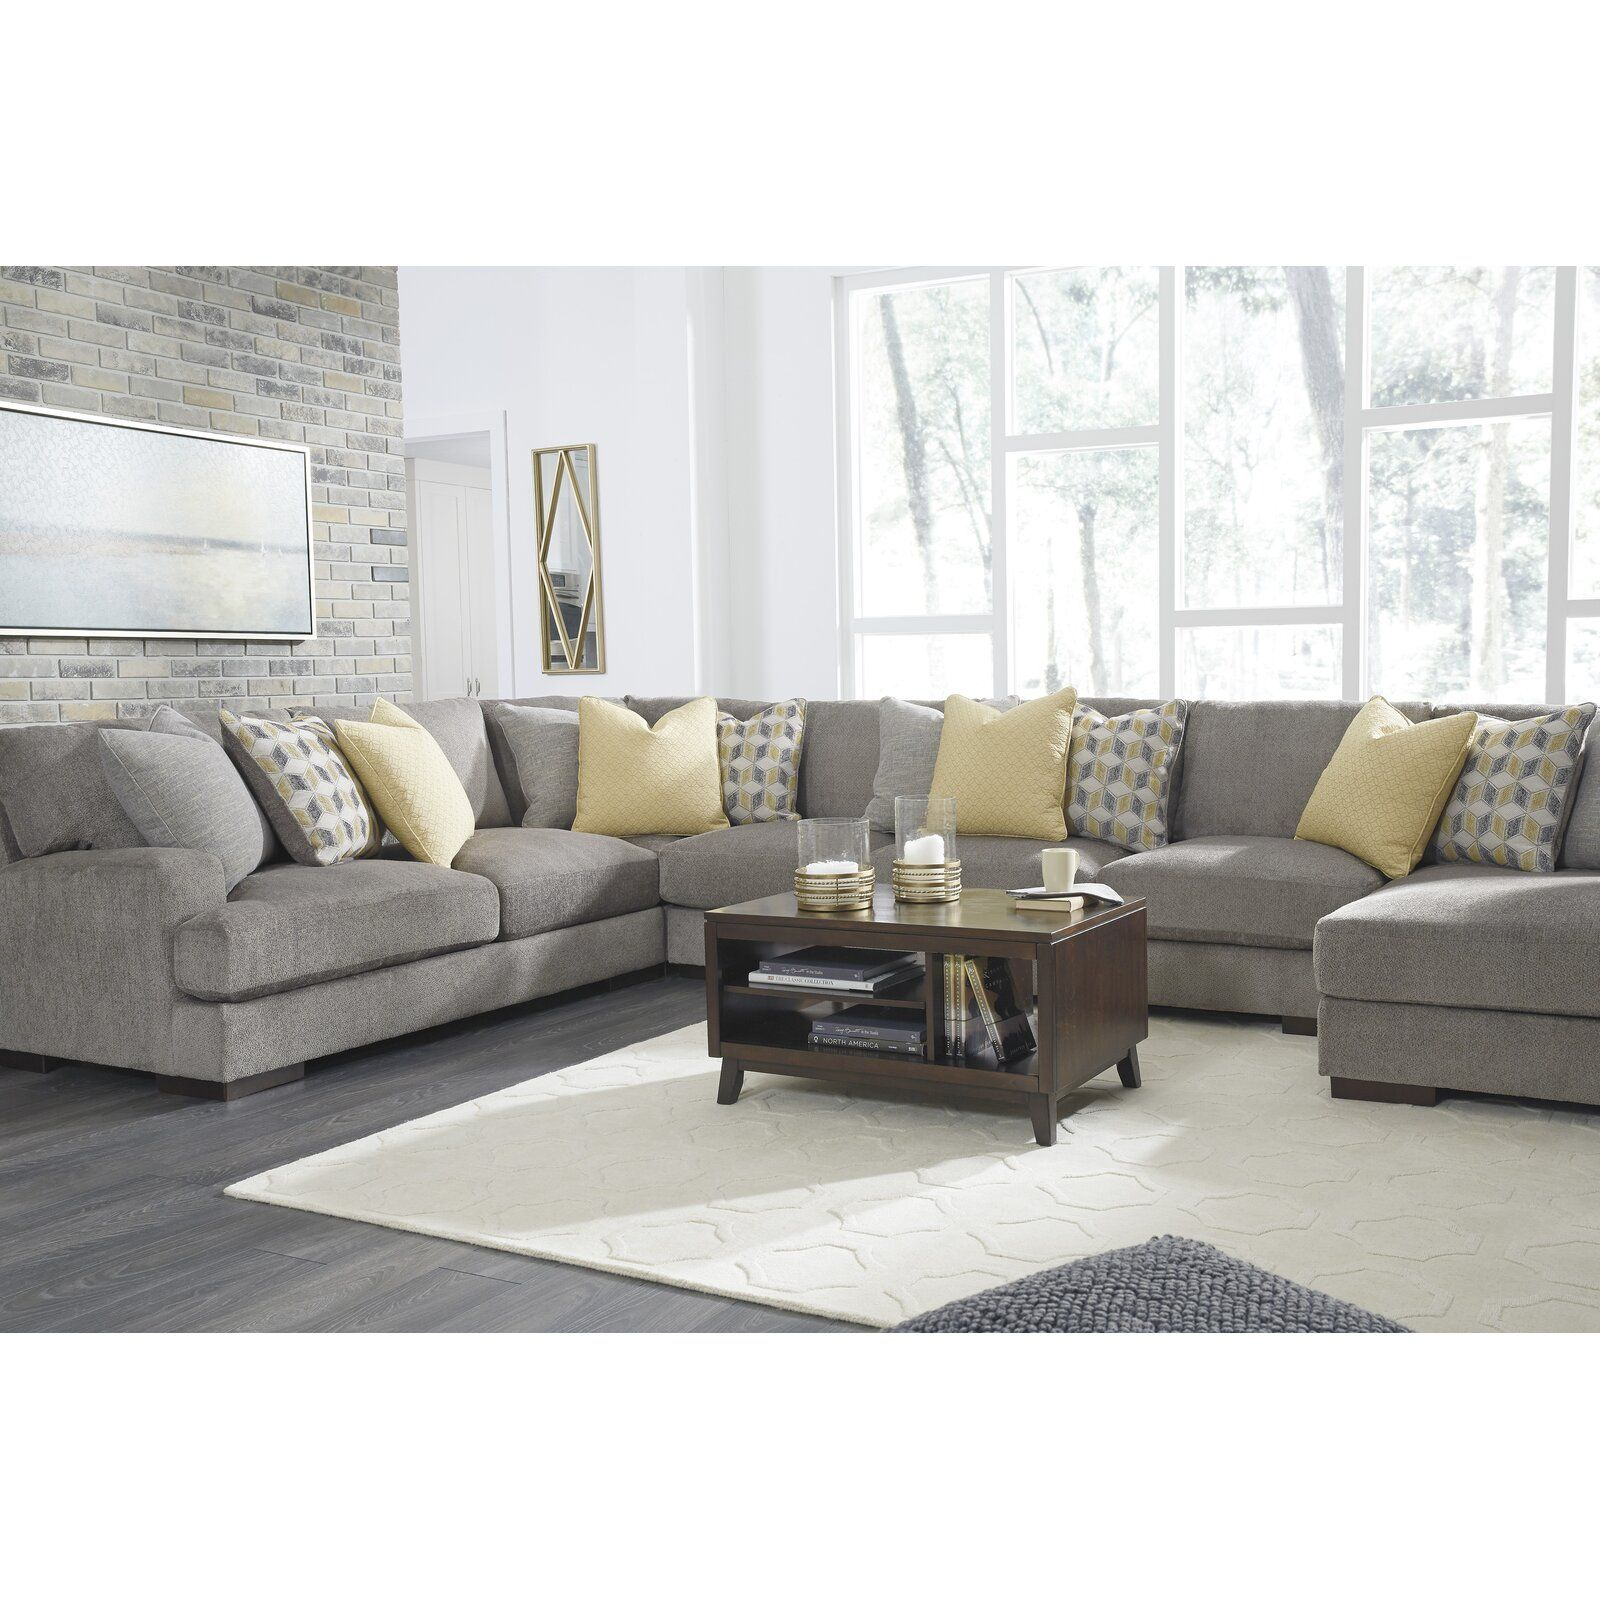 Latitude Run Cabravale Sectional Wayfair Notes Like Look Of Sectional Living Room Furniture Layout Living Room Sofa Couches Living Room